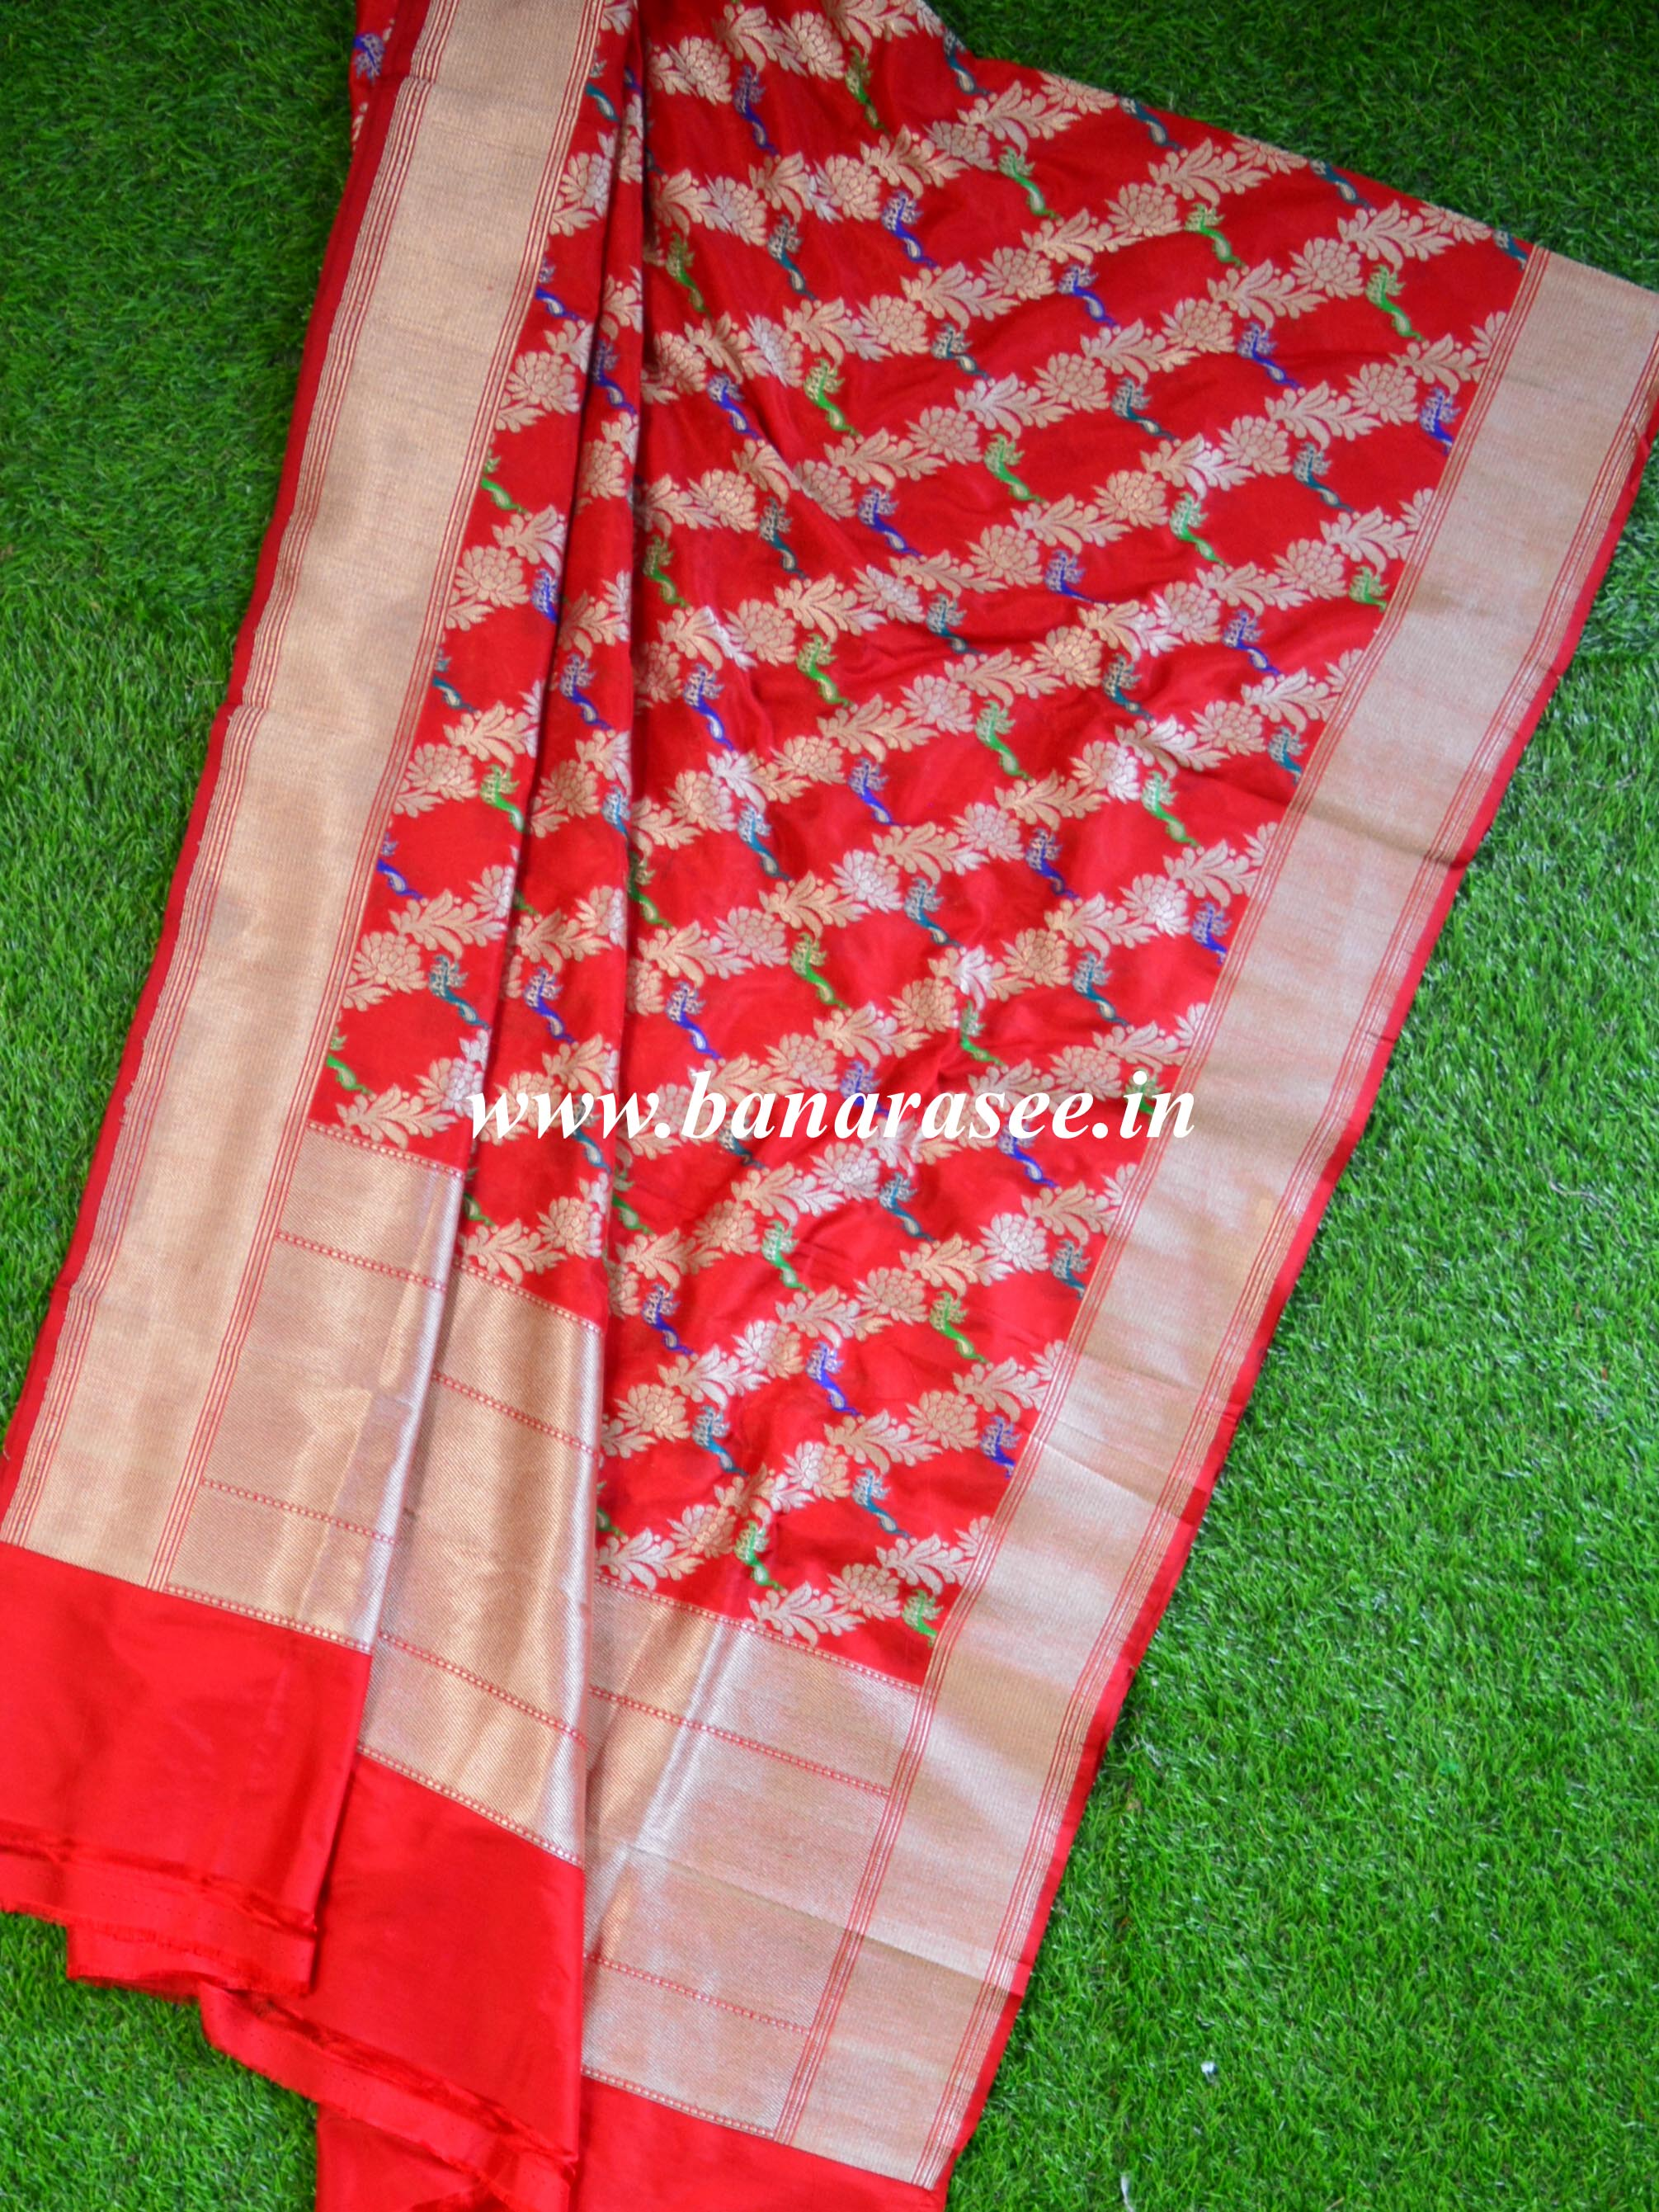 Banarasee Handwoven Pure Katan Silk Dupatta With Peacock Motif Design-Red